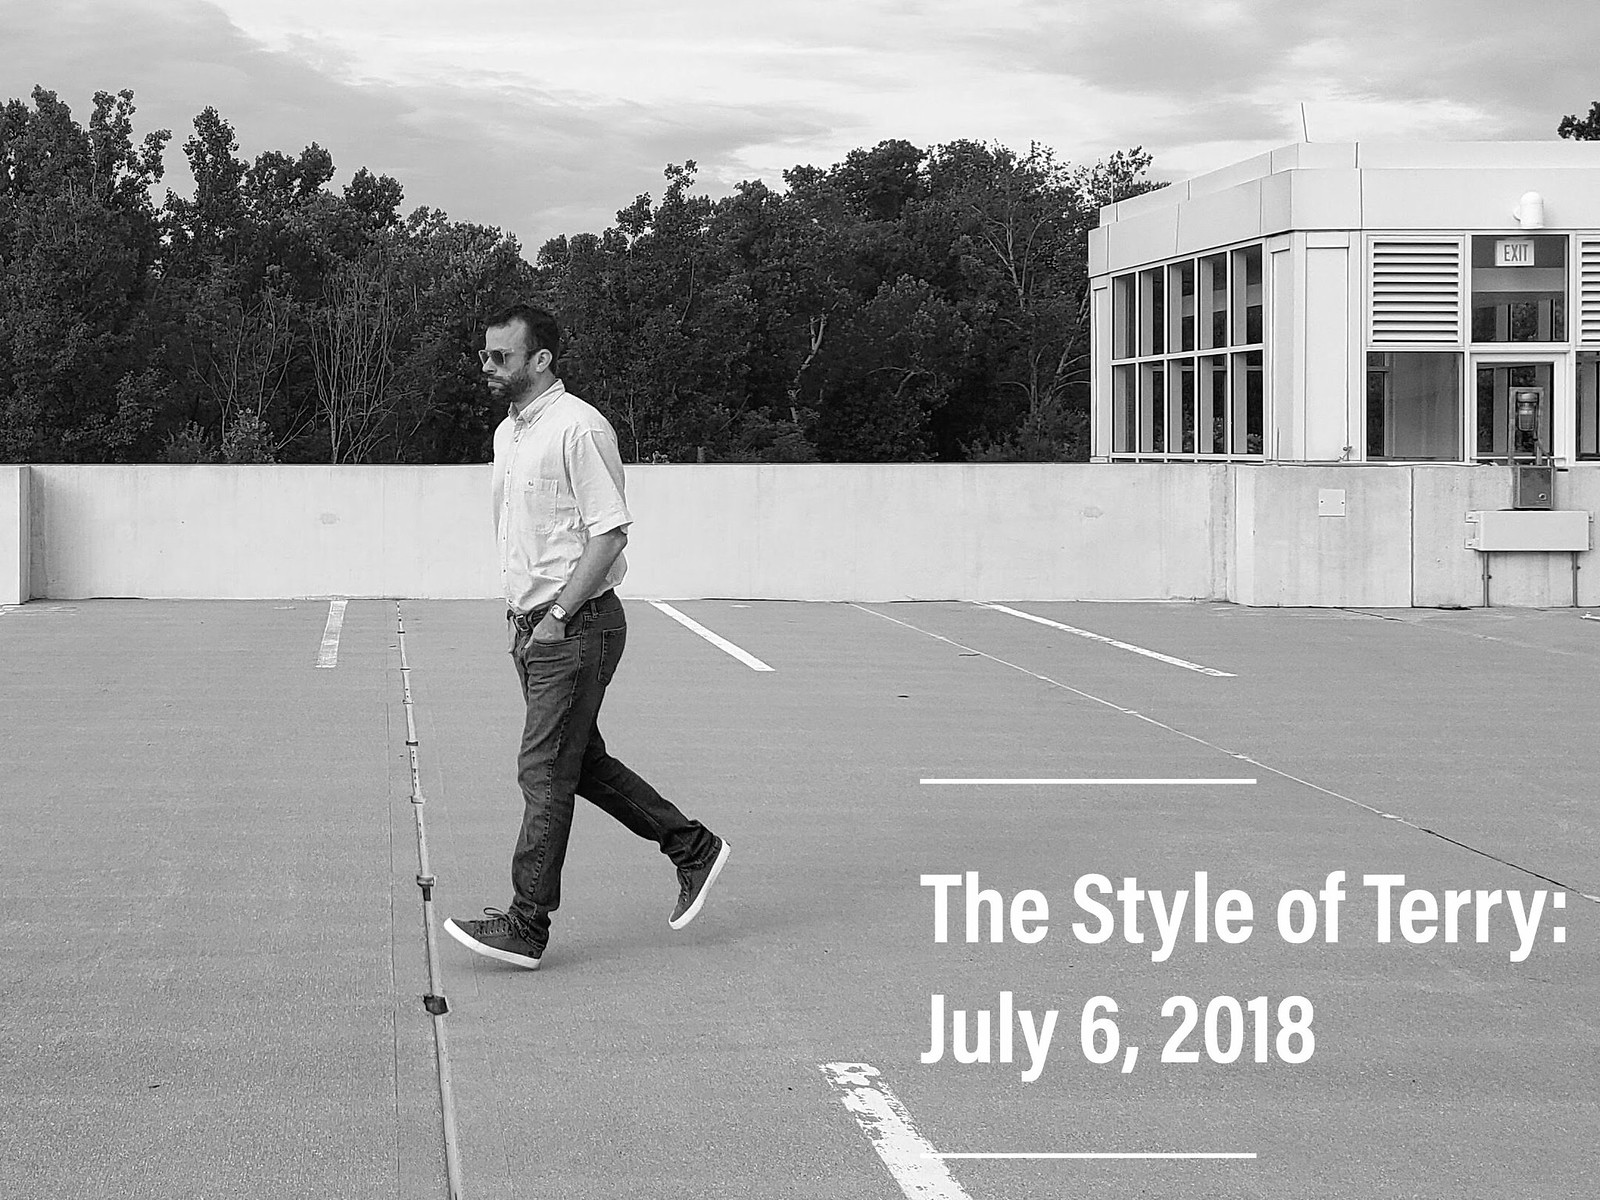 The Style of Terry: 7.6.18